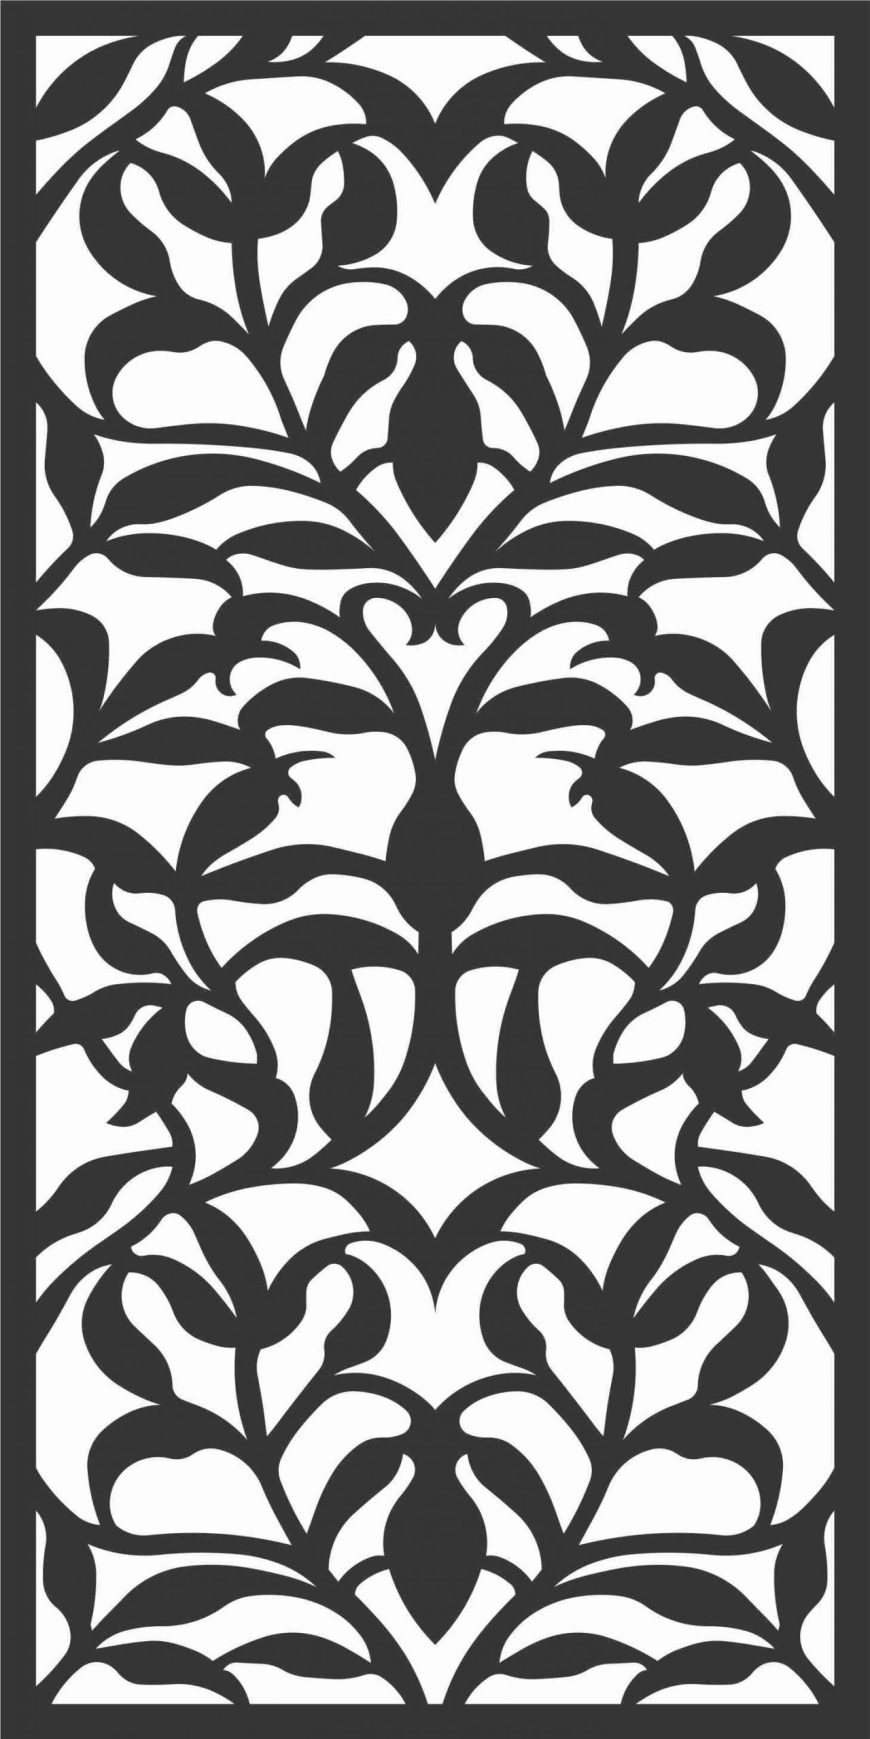 Decorative Screen Patterns For Laser Cutting 70 Free DXF File